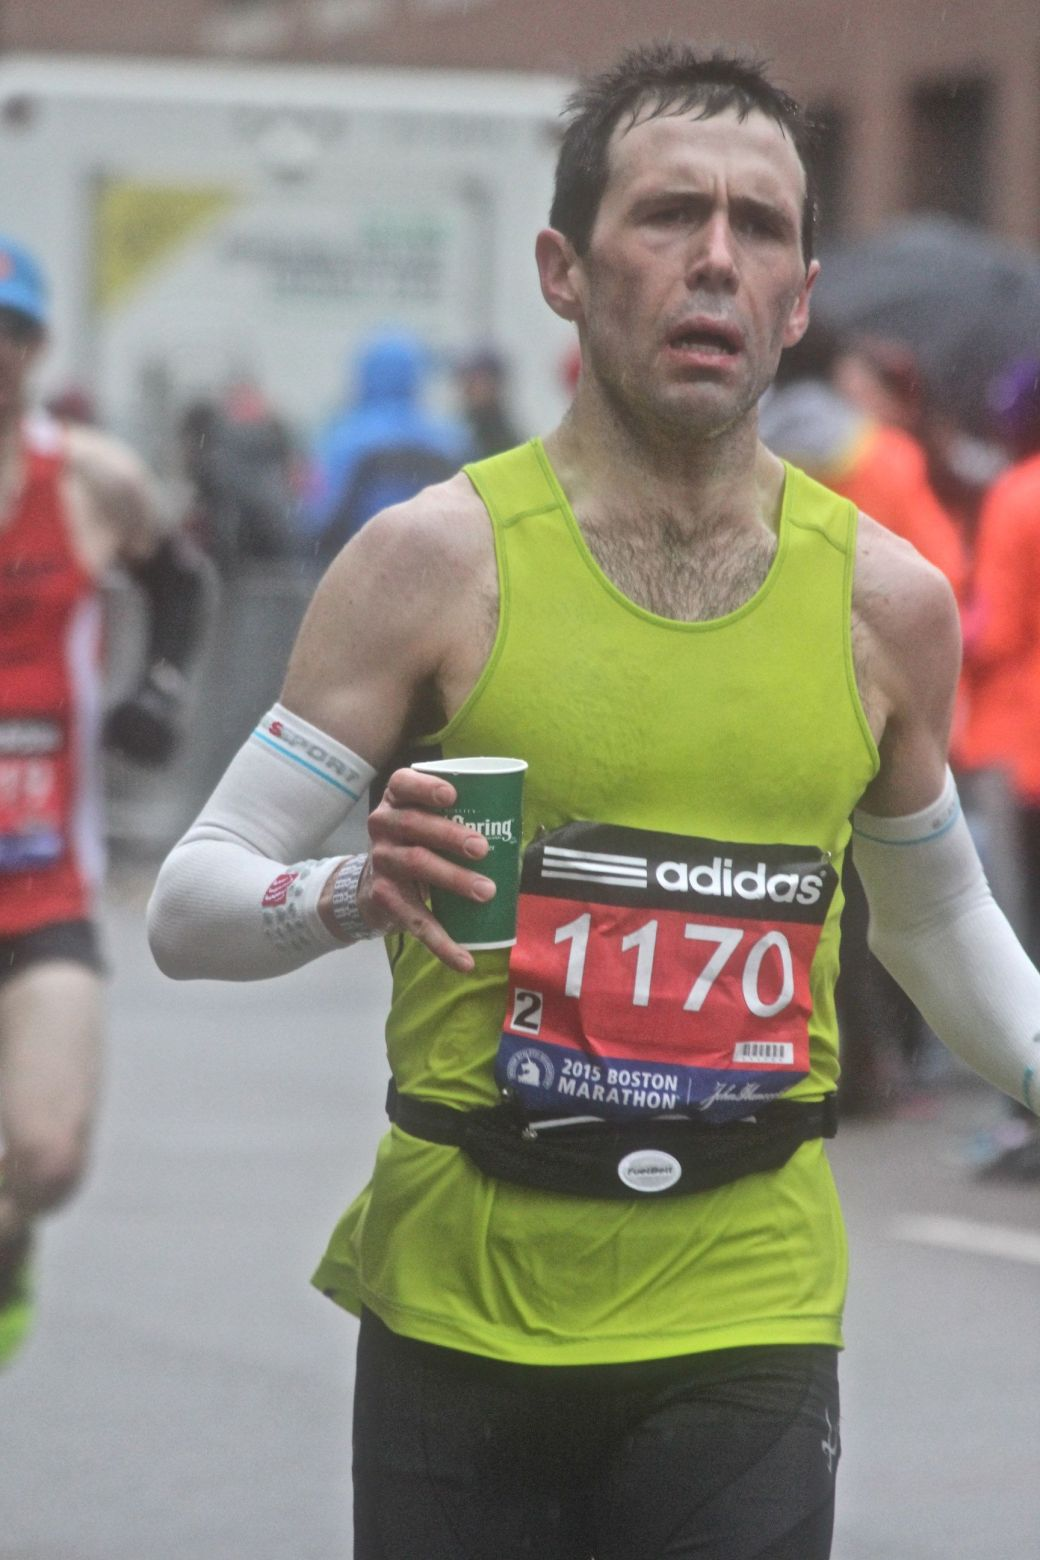 boston marathon april 20 2015 racer number 1170